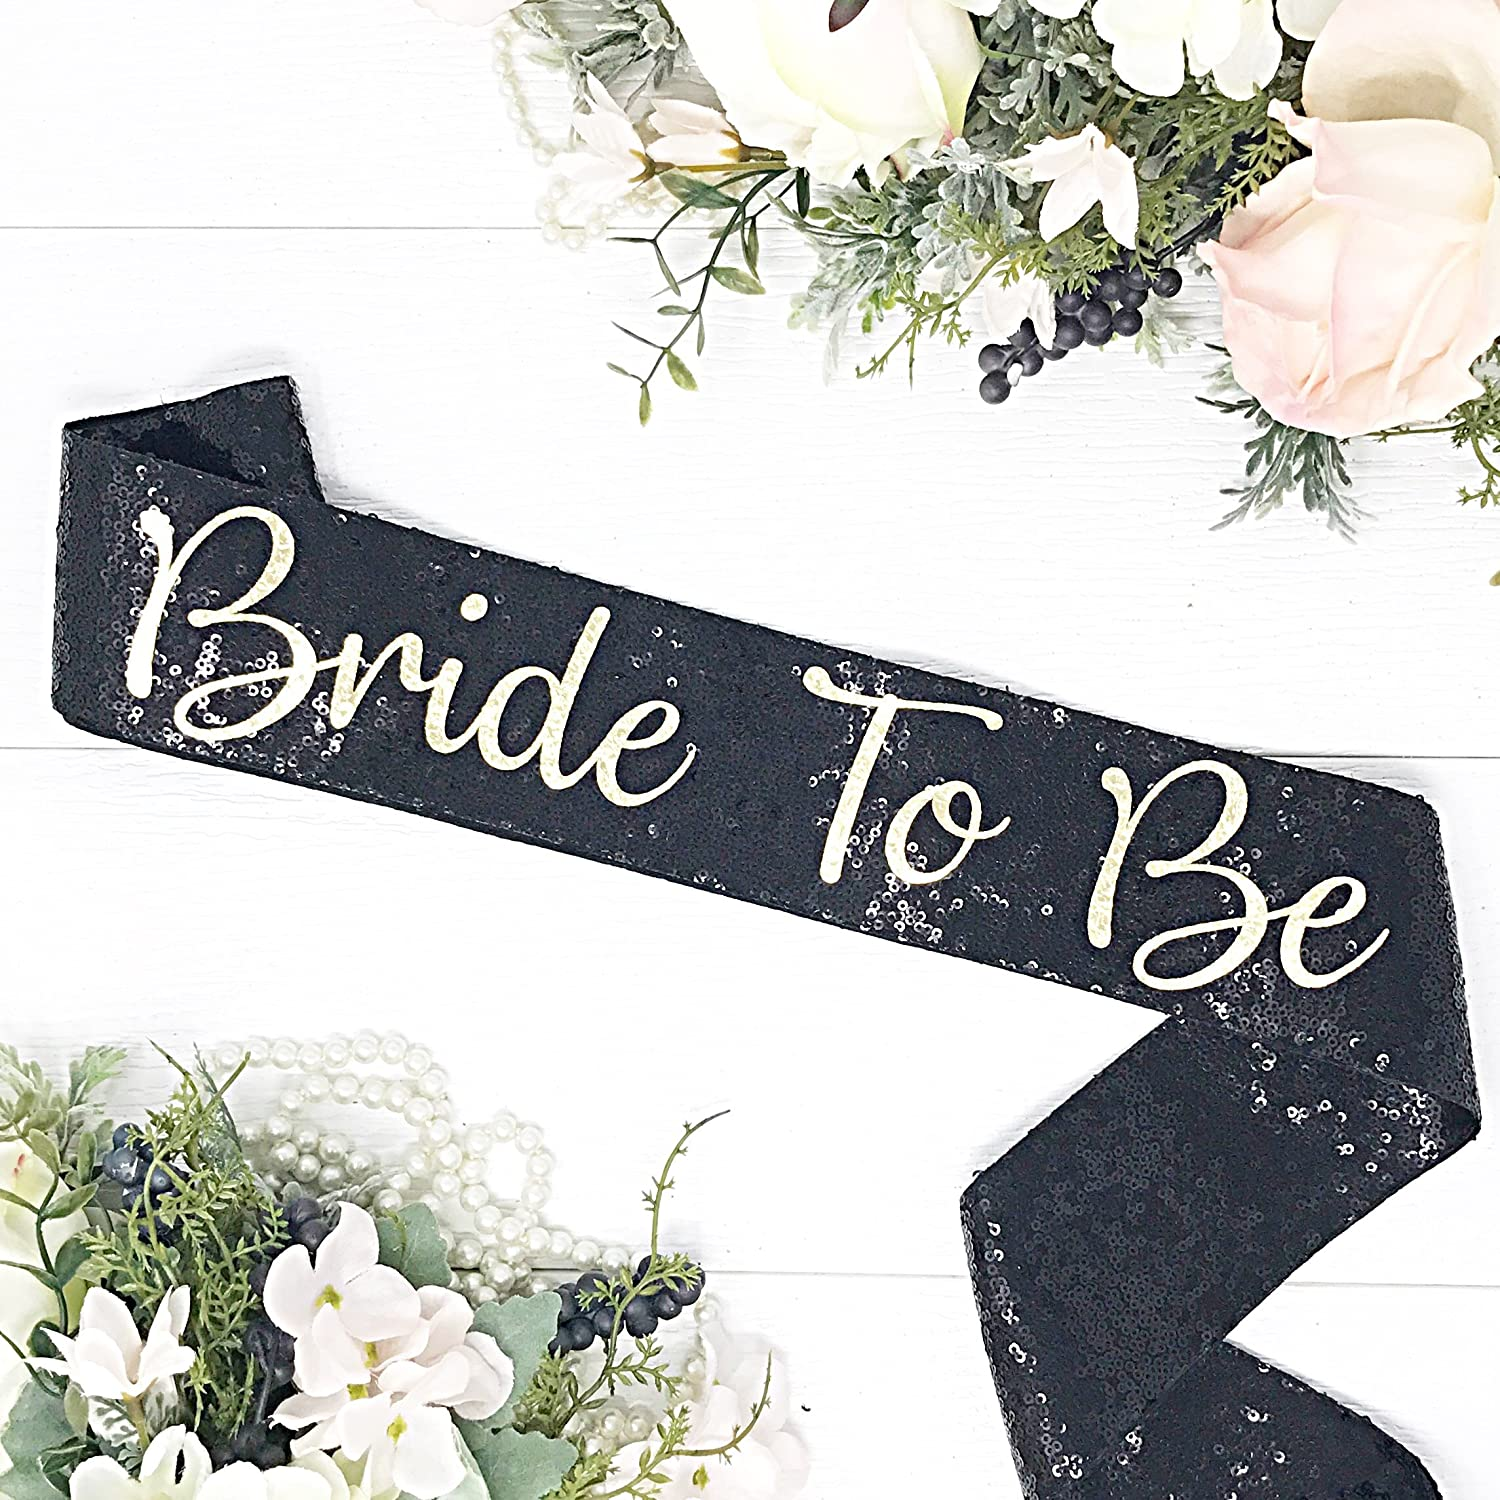 Black Sequin Bachelorette Sash - Black Bridal Sash - Black Sequin